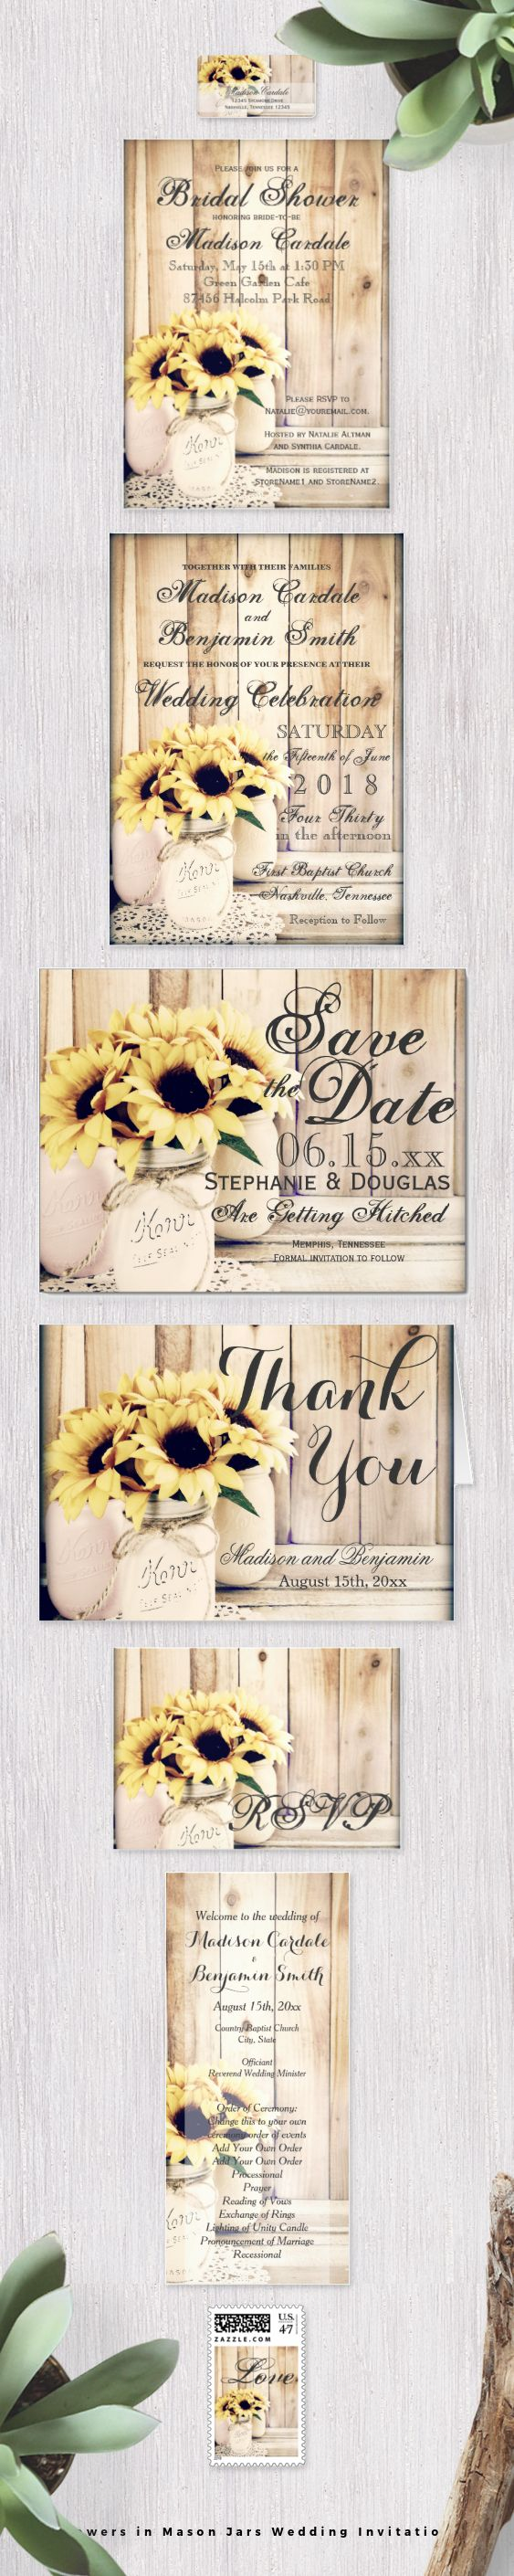 ideas for country wedding invitations%0A Sunflower Wedding Invitation Set Rustic Sunflower Country Wedding Invites  Wood Grain Background Rustic Wedding Rustic Chic Printable Invite   Rustic